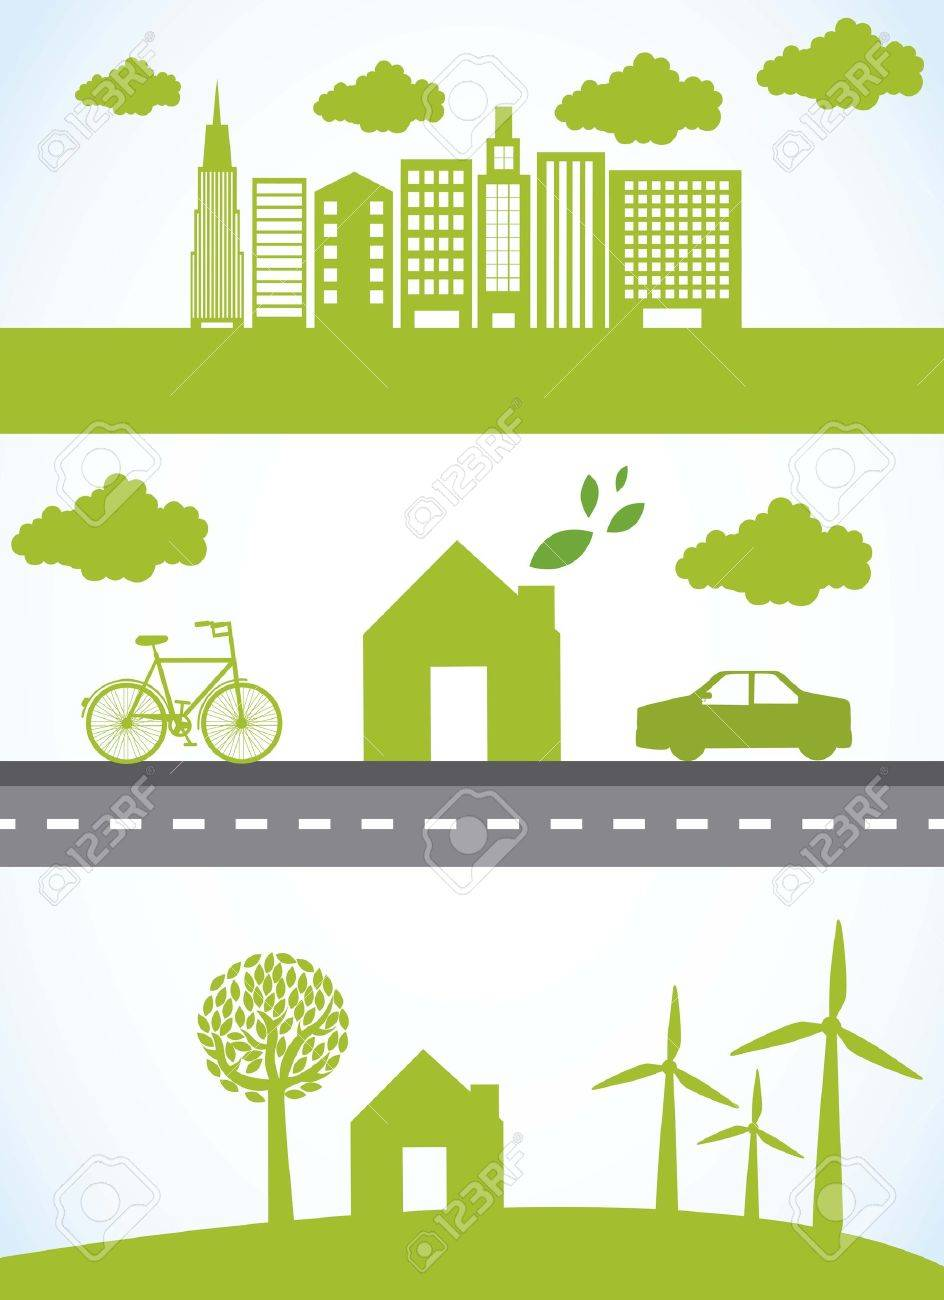 green city with car and bike, ecology. Stock Vector - 15667820